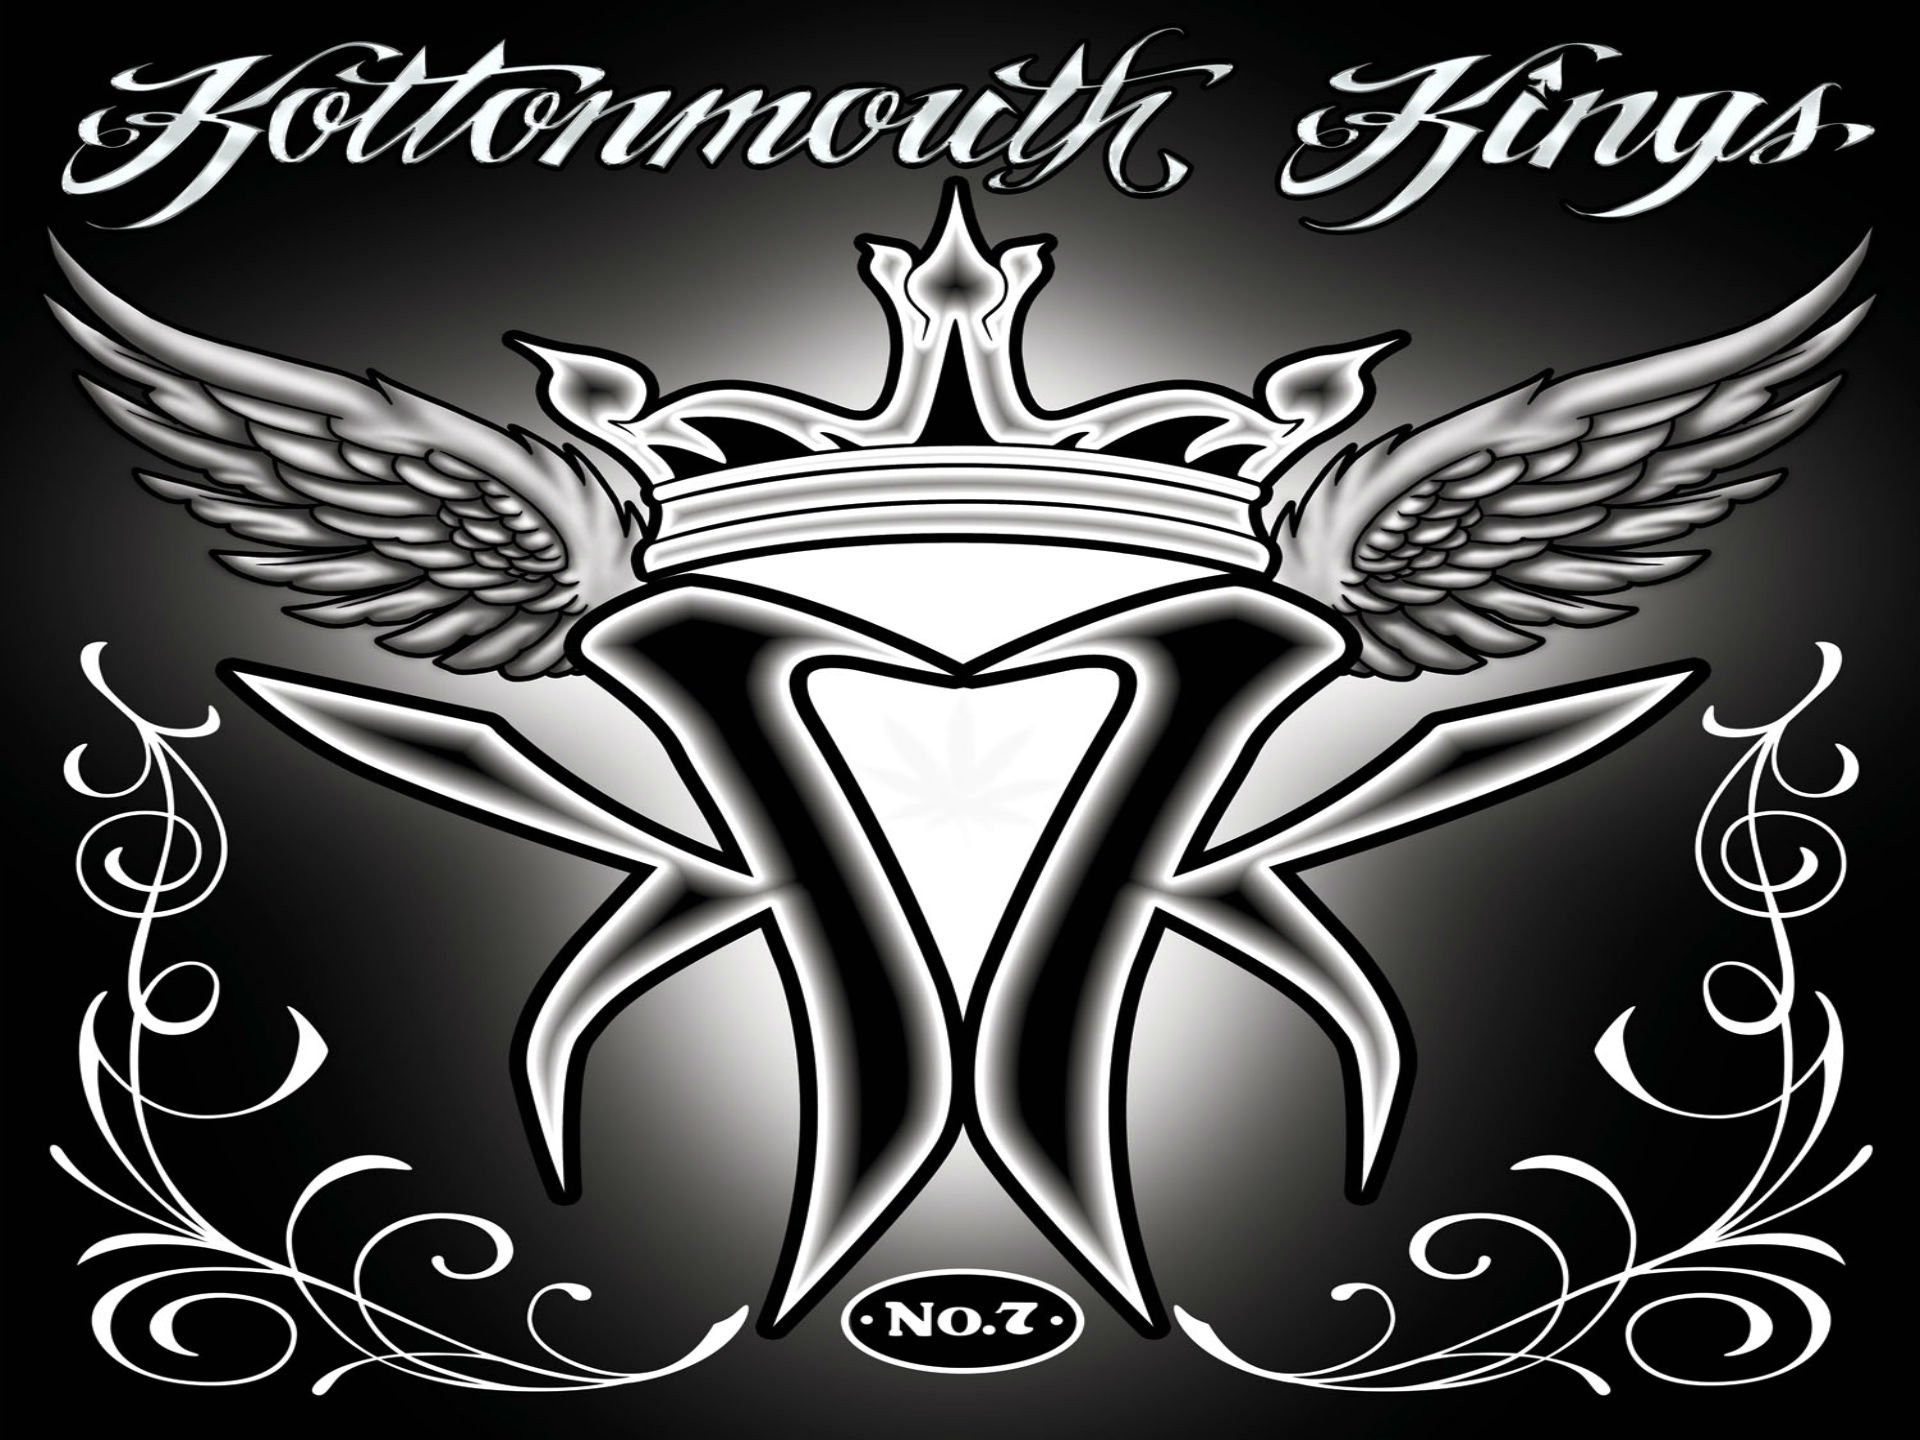 Kottonmouth Kings Wallpaper